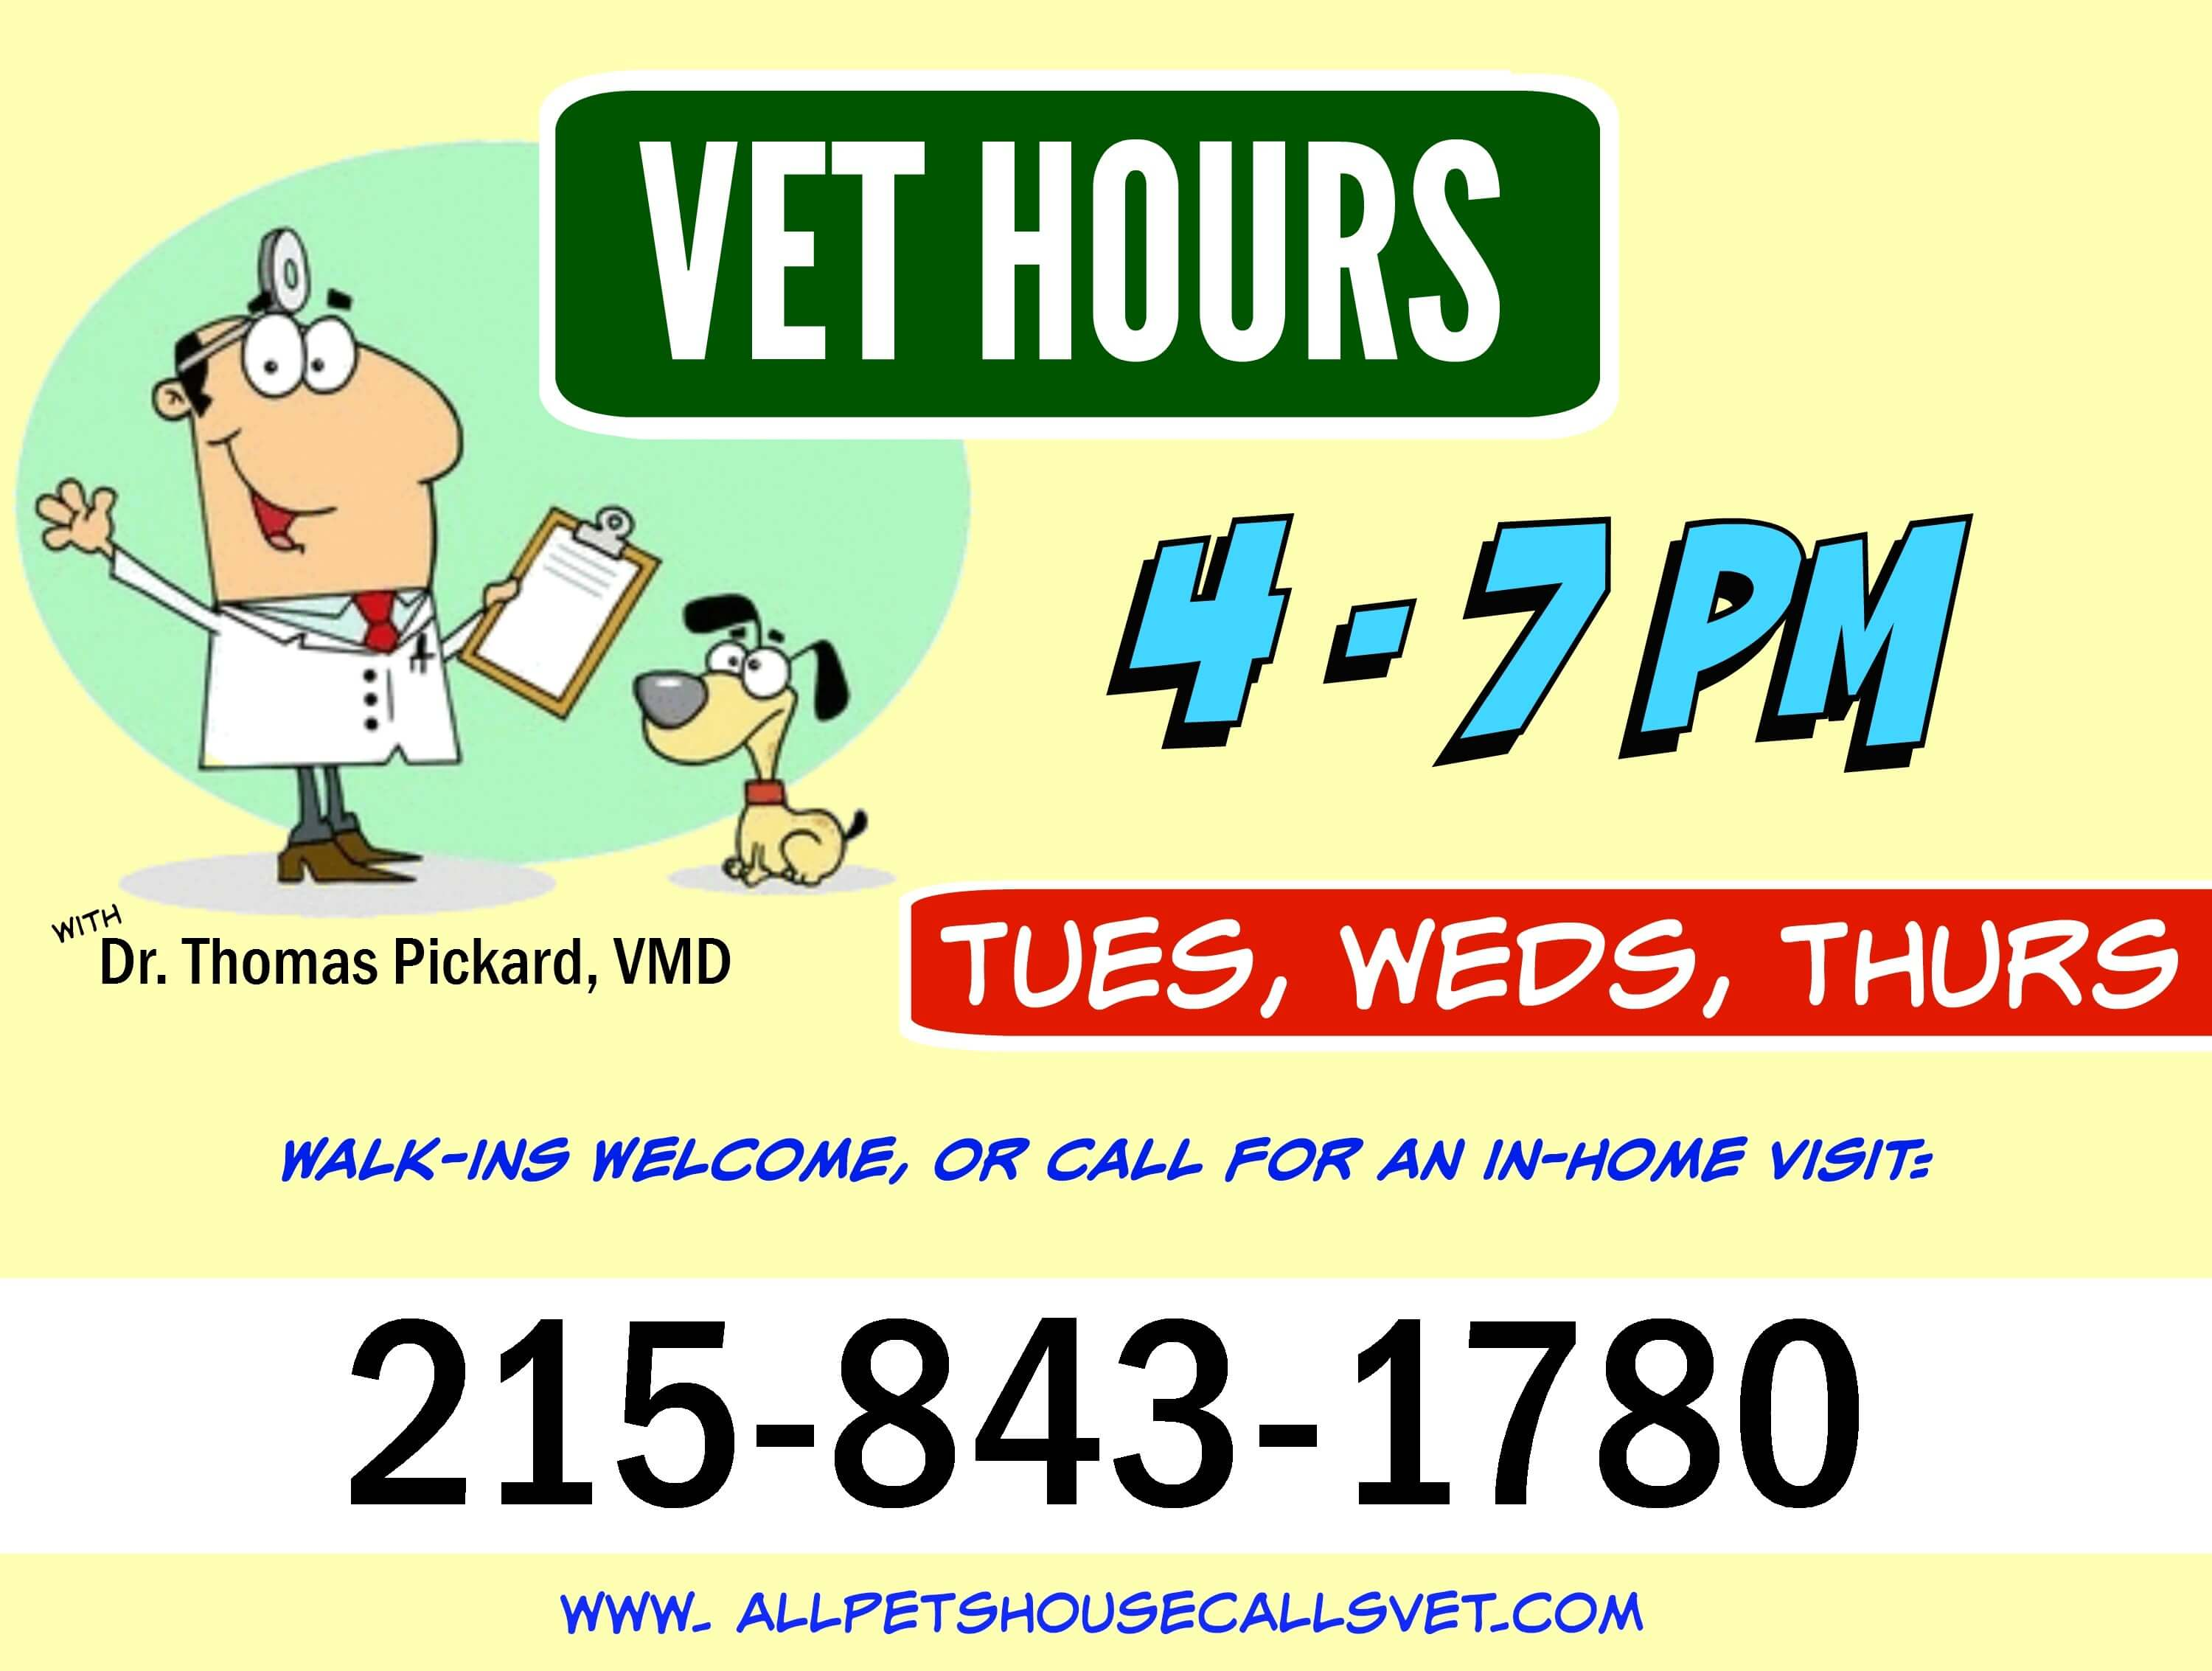 Eastfallslocal Pet STreet vet hours number collage text 2